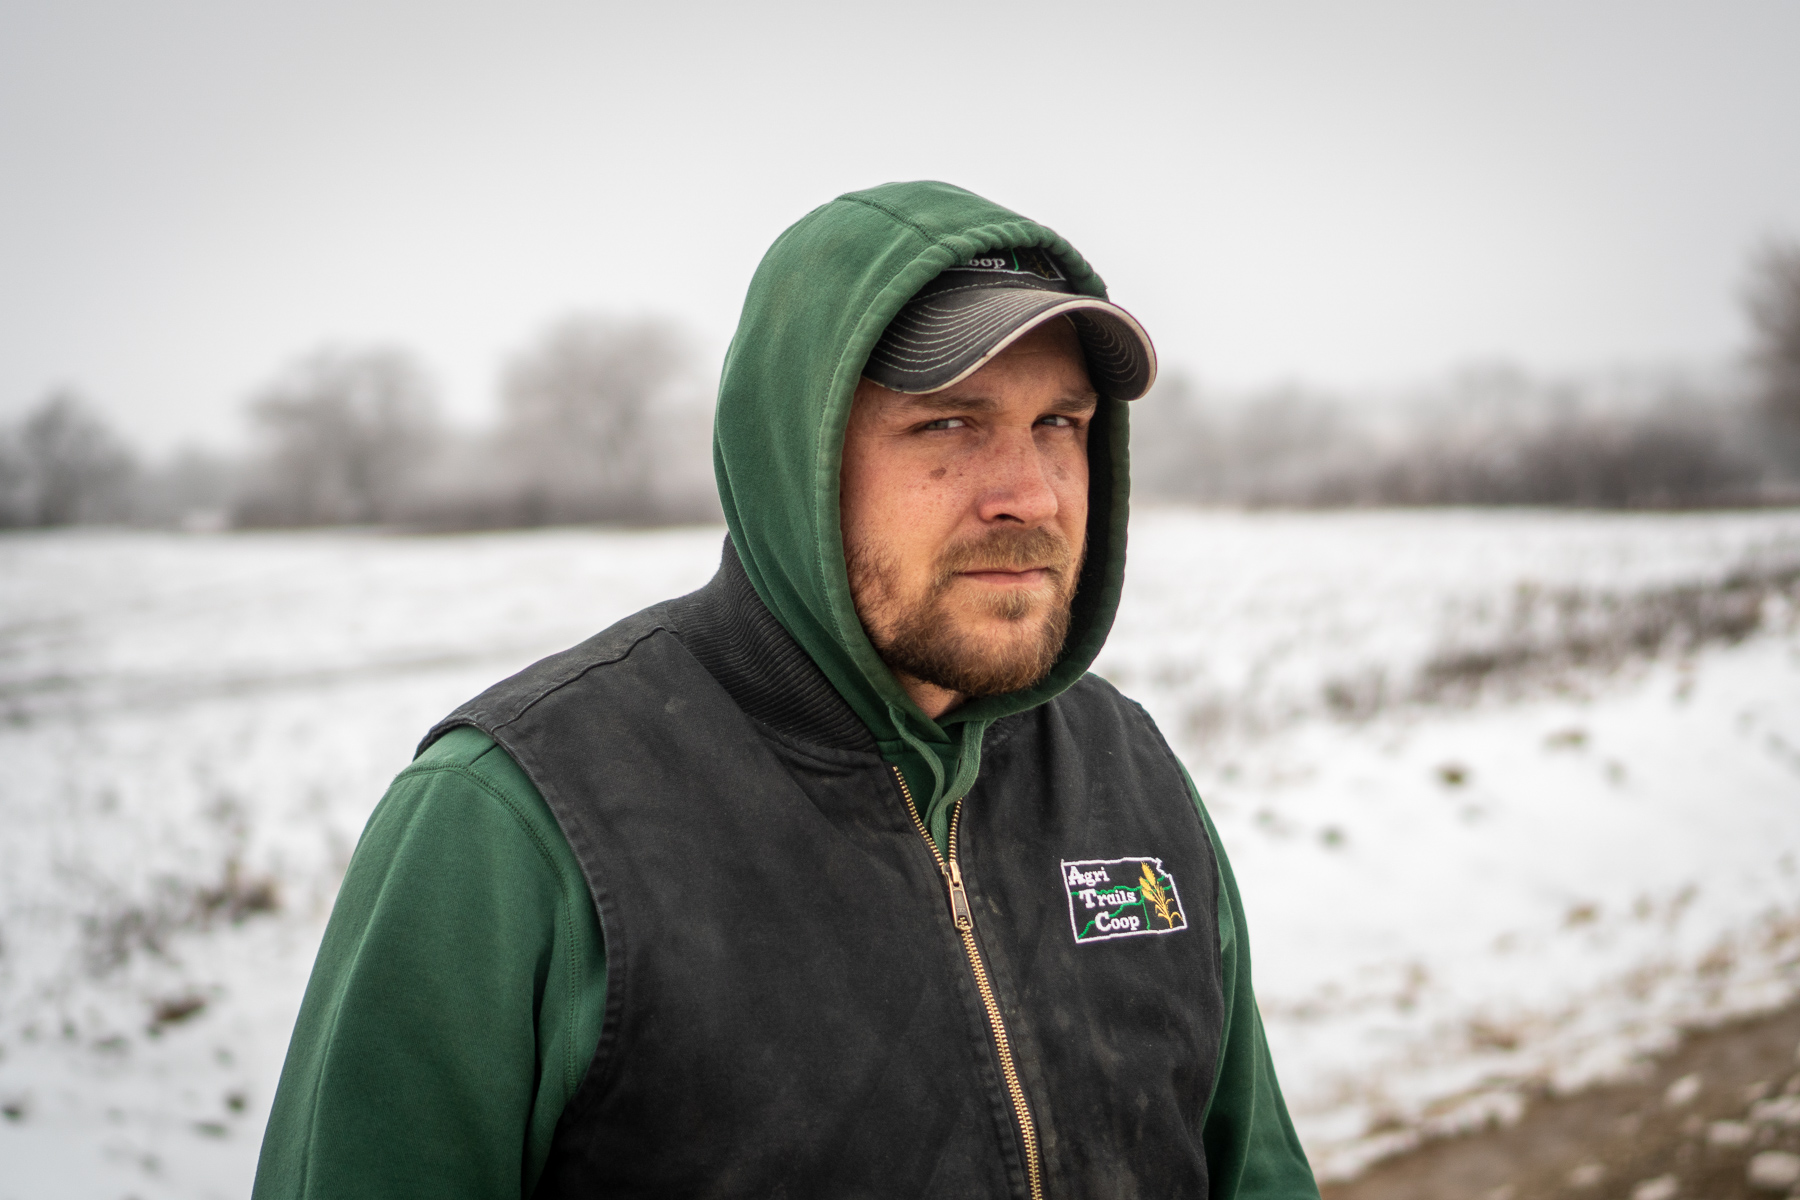 Jordan Gott, Casey Schardein's cousin and colleague at the crash site outside of Hope, Kansas, on January 18, 2019. He said that they had both become more careful with drunk driving as they grew older.